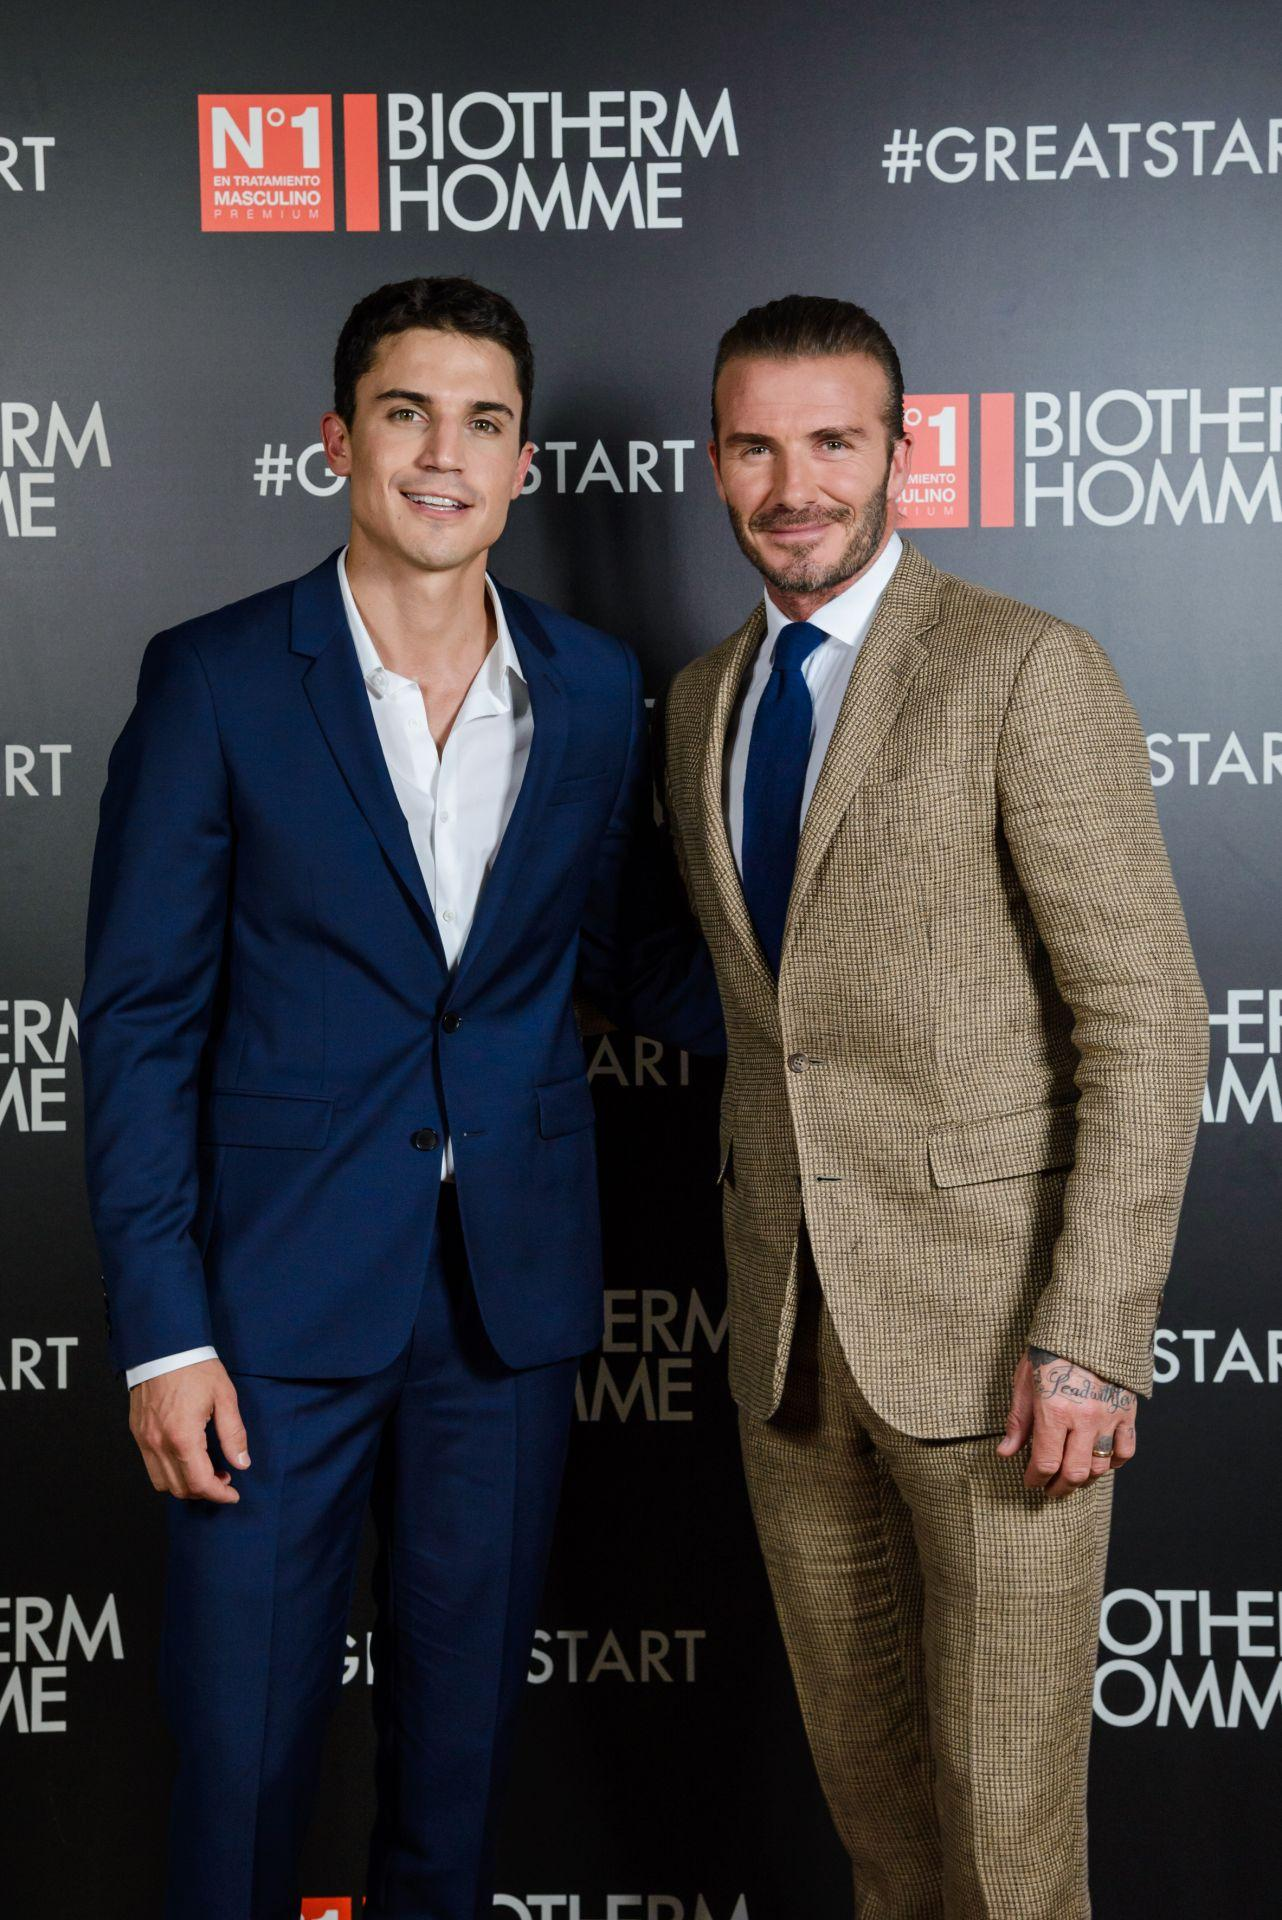 ¿Cuánto mide Álex González? David-Beckham-with-Alex-Gonzalez-for-Biotherm-Homme-copia